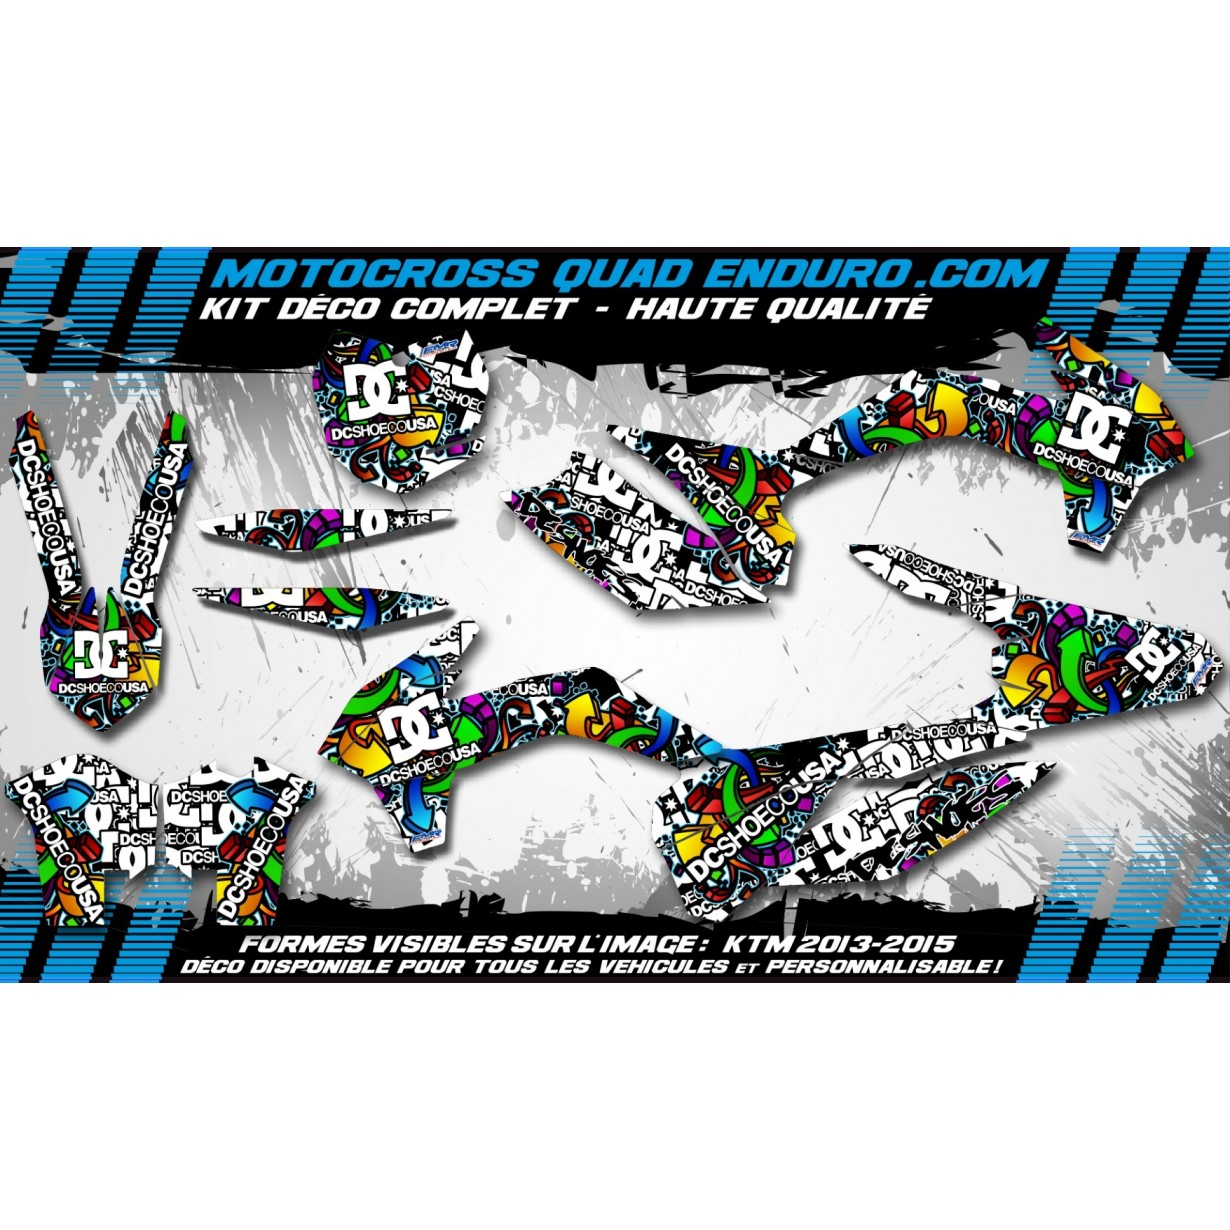 KIT DÉCO Perso 125-250 YZ UFO LOOK 4T 02-14 DC Shoes MA14A